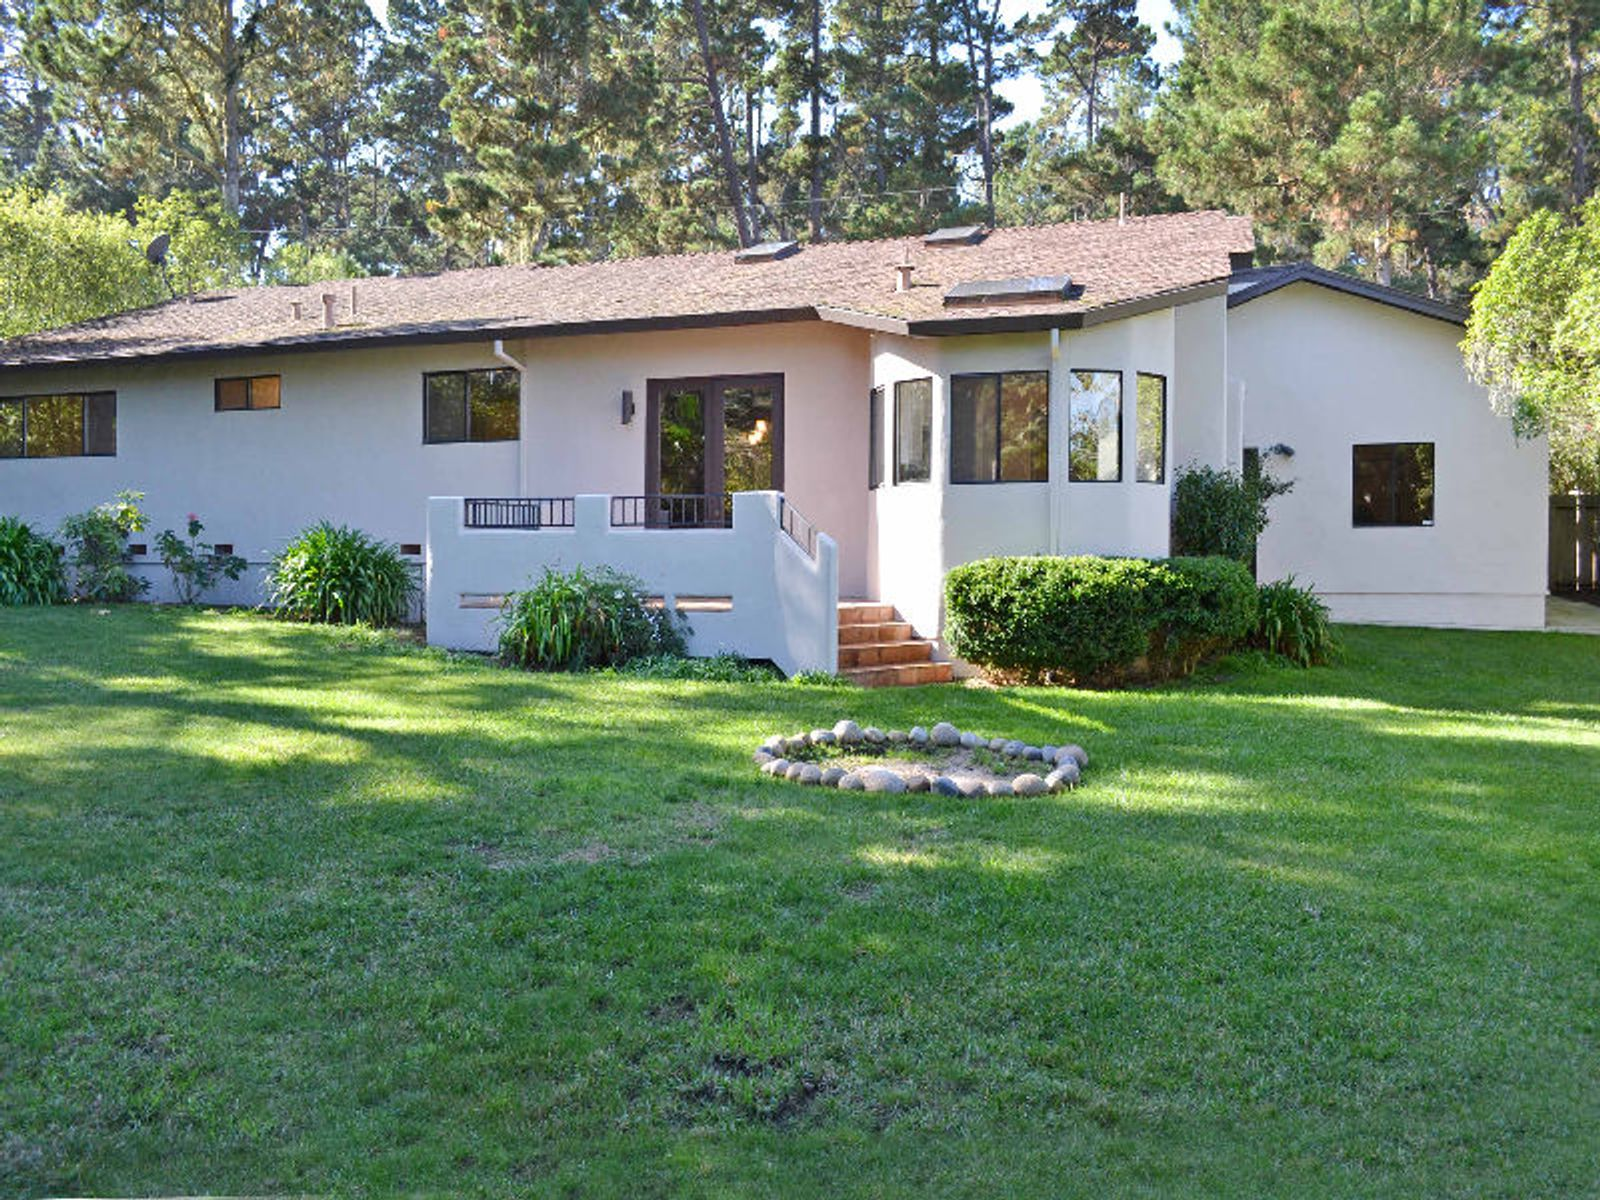 1155 Lookout Pebble Beach, Pebble Beach CA Single Family Home - Monterey Real Estate